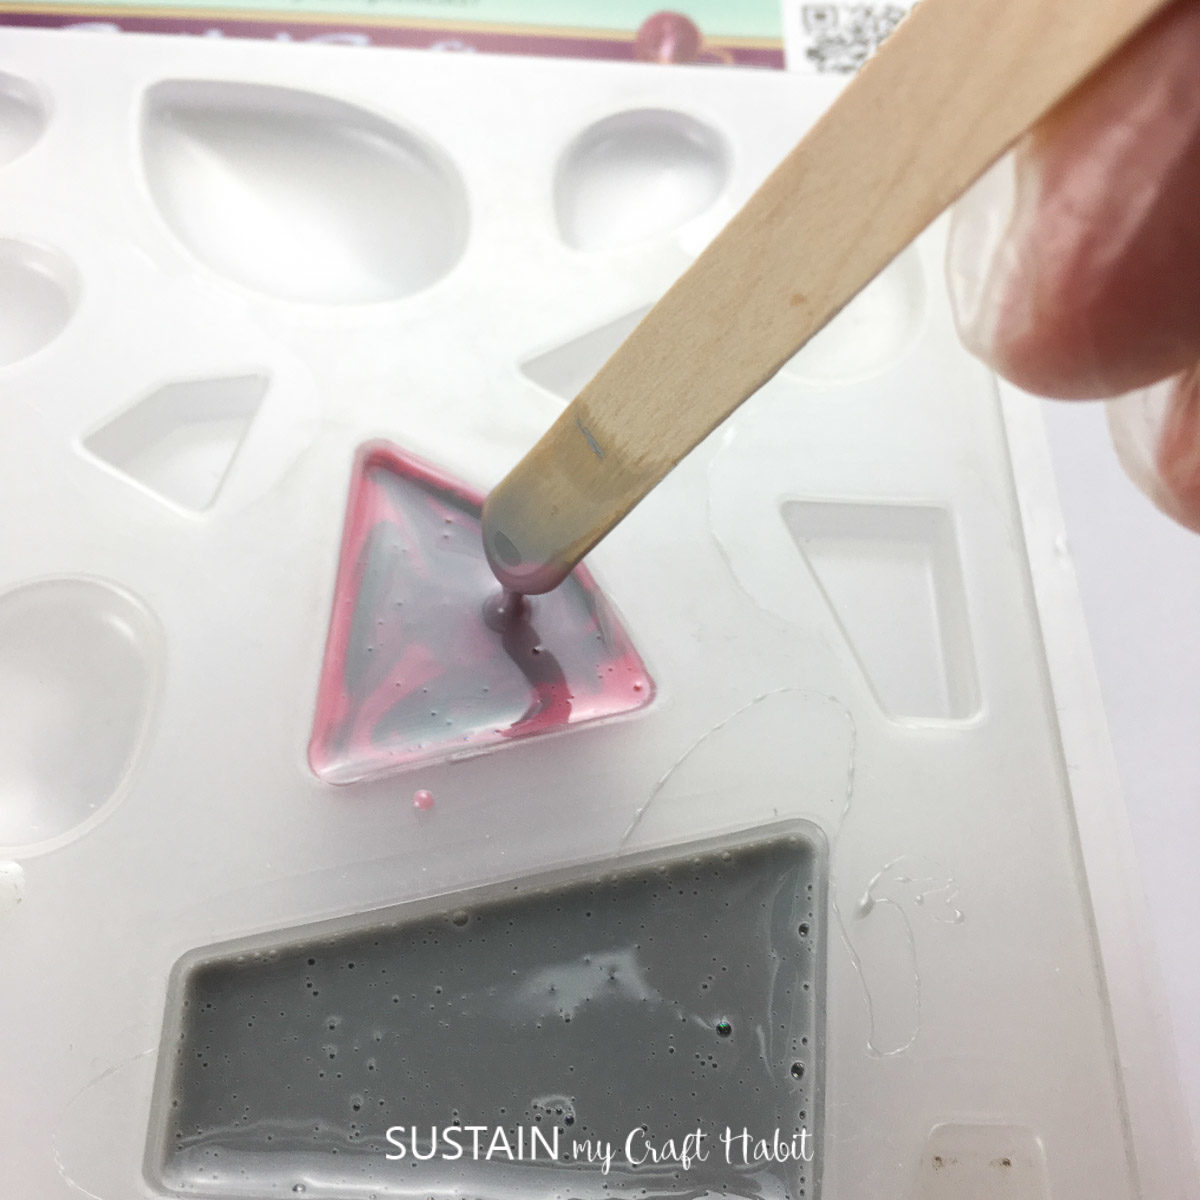 Mixing grey and pink resin in a mold using a wooden stick.